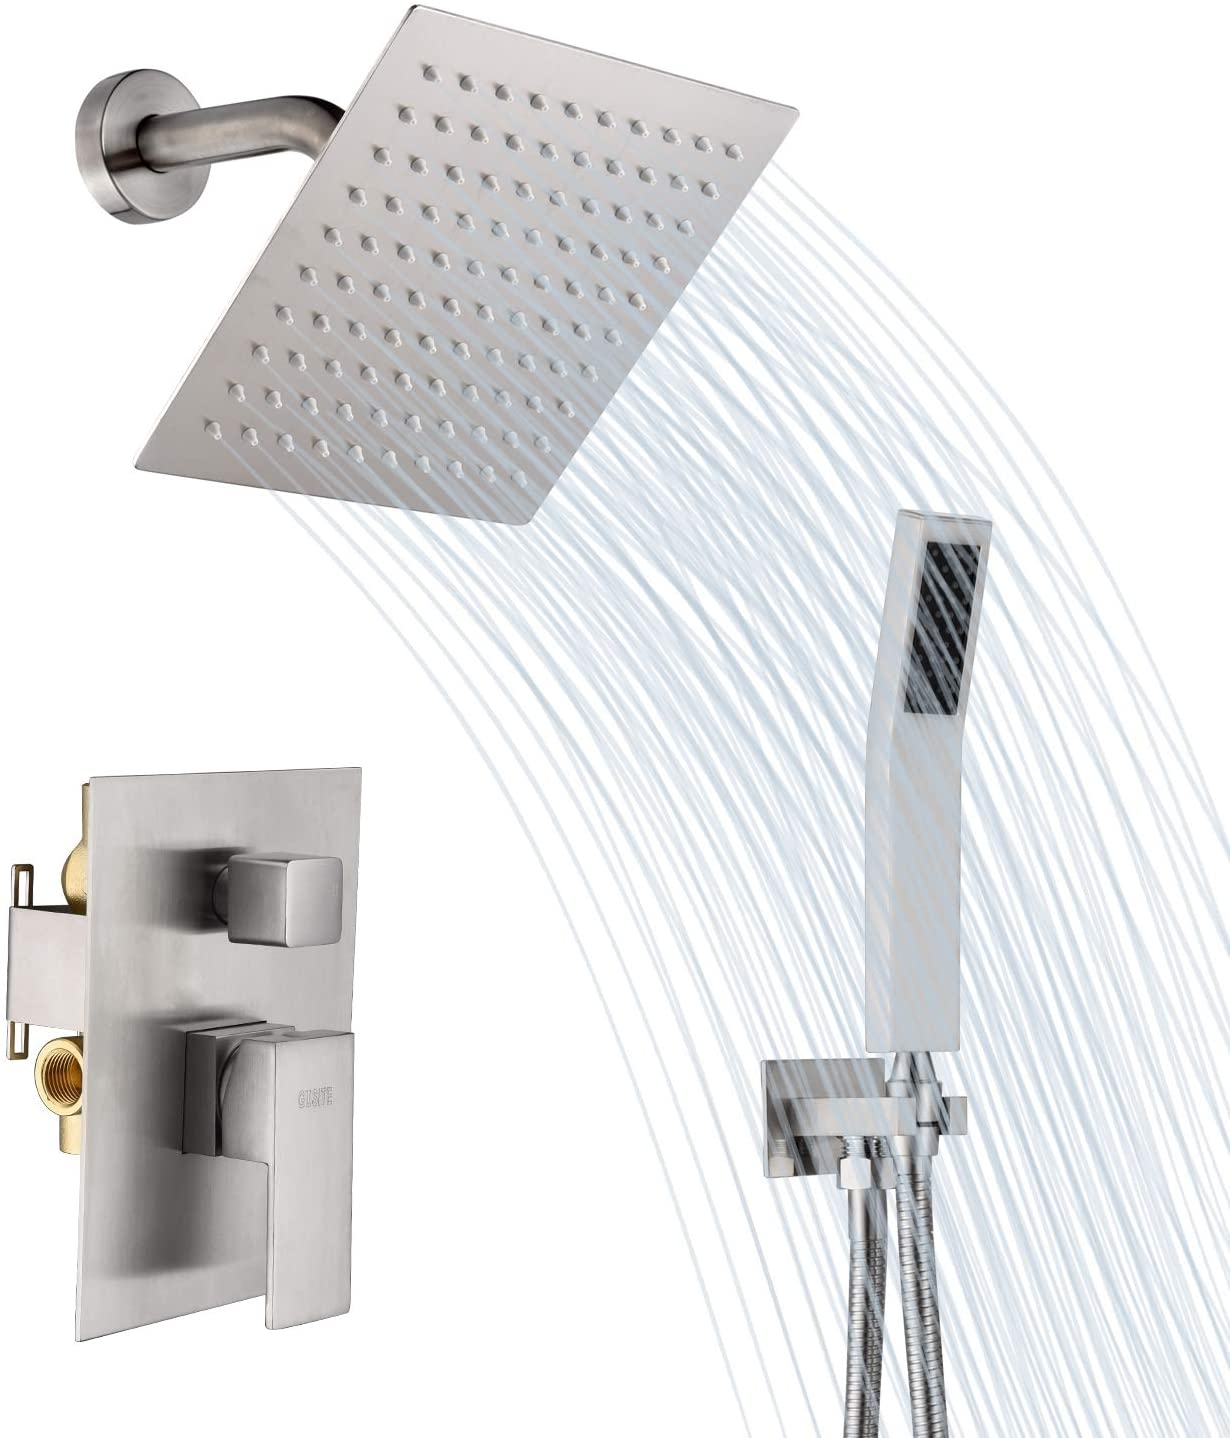 GUSITE Shower System, Shower Faucet Set Complete with 8 Inch Square Rain Shower Head and Handheld Shower, Bathroom Luxury Rain Mixer Shower Combo Set (Rough-In Valve Body and Trim Included)